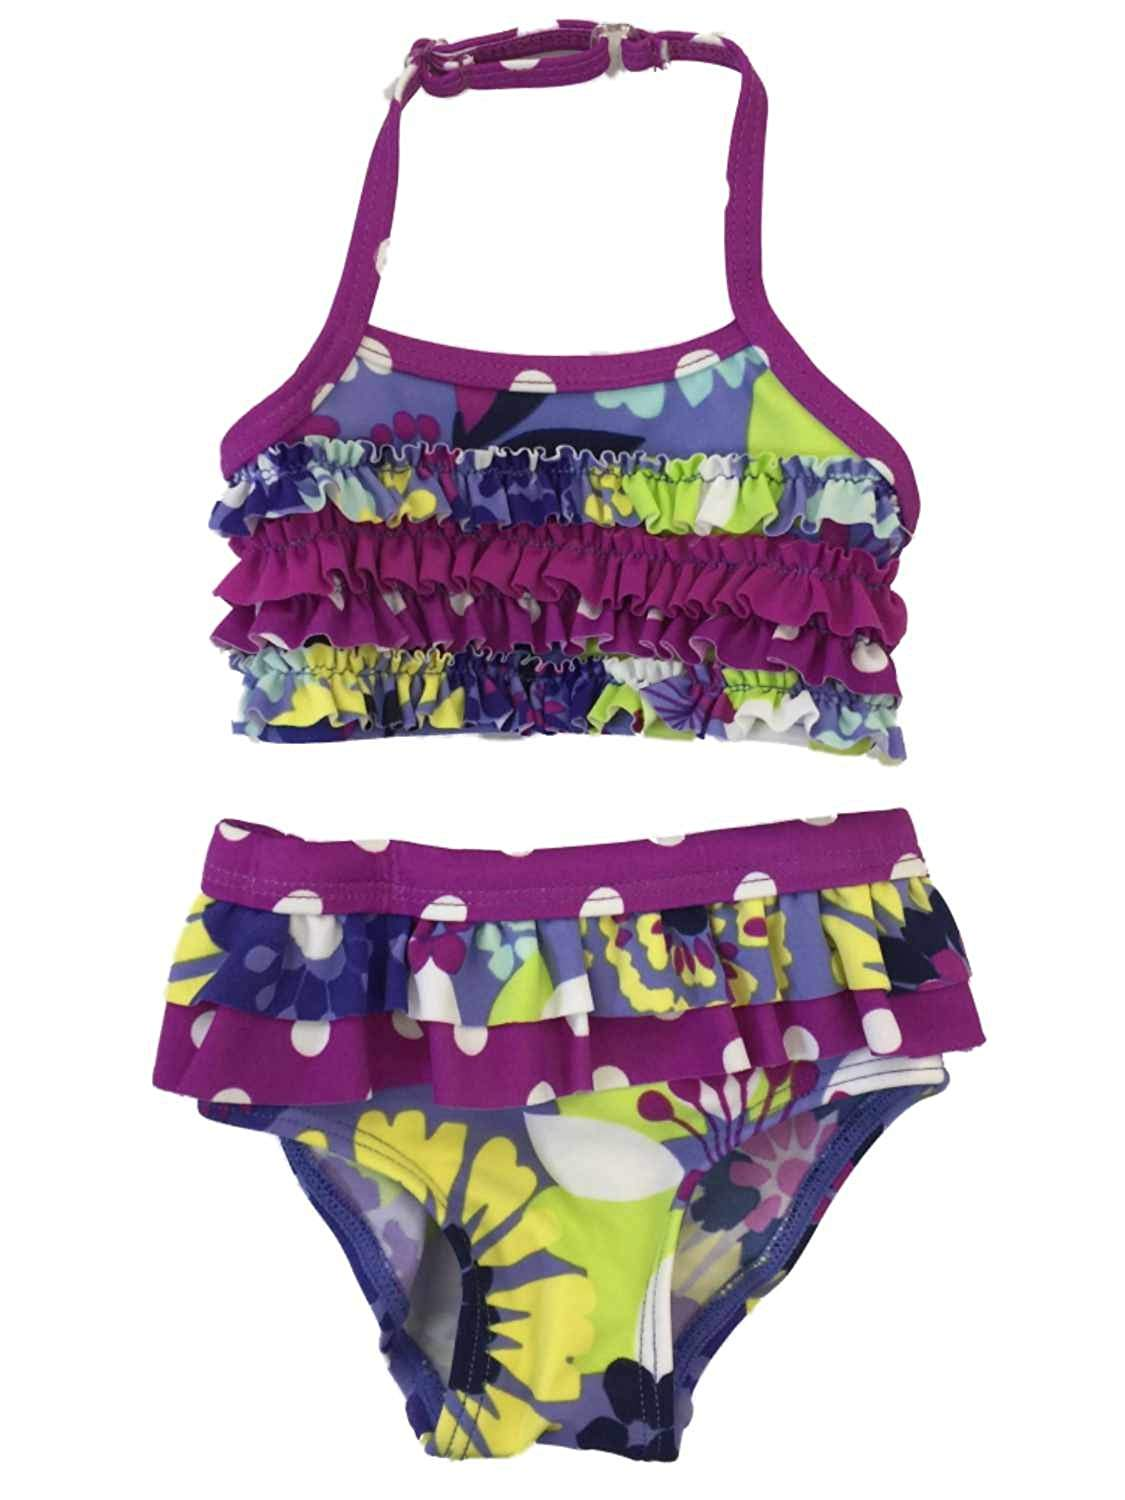 f9b800e510 Get Quotations · KOALA Infant Girls Purple Floral Ruched 2 Piece Bikini  Swimming   Bathing Suit Newborn